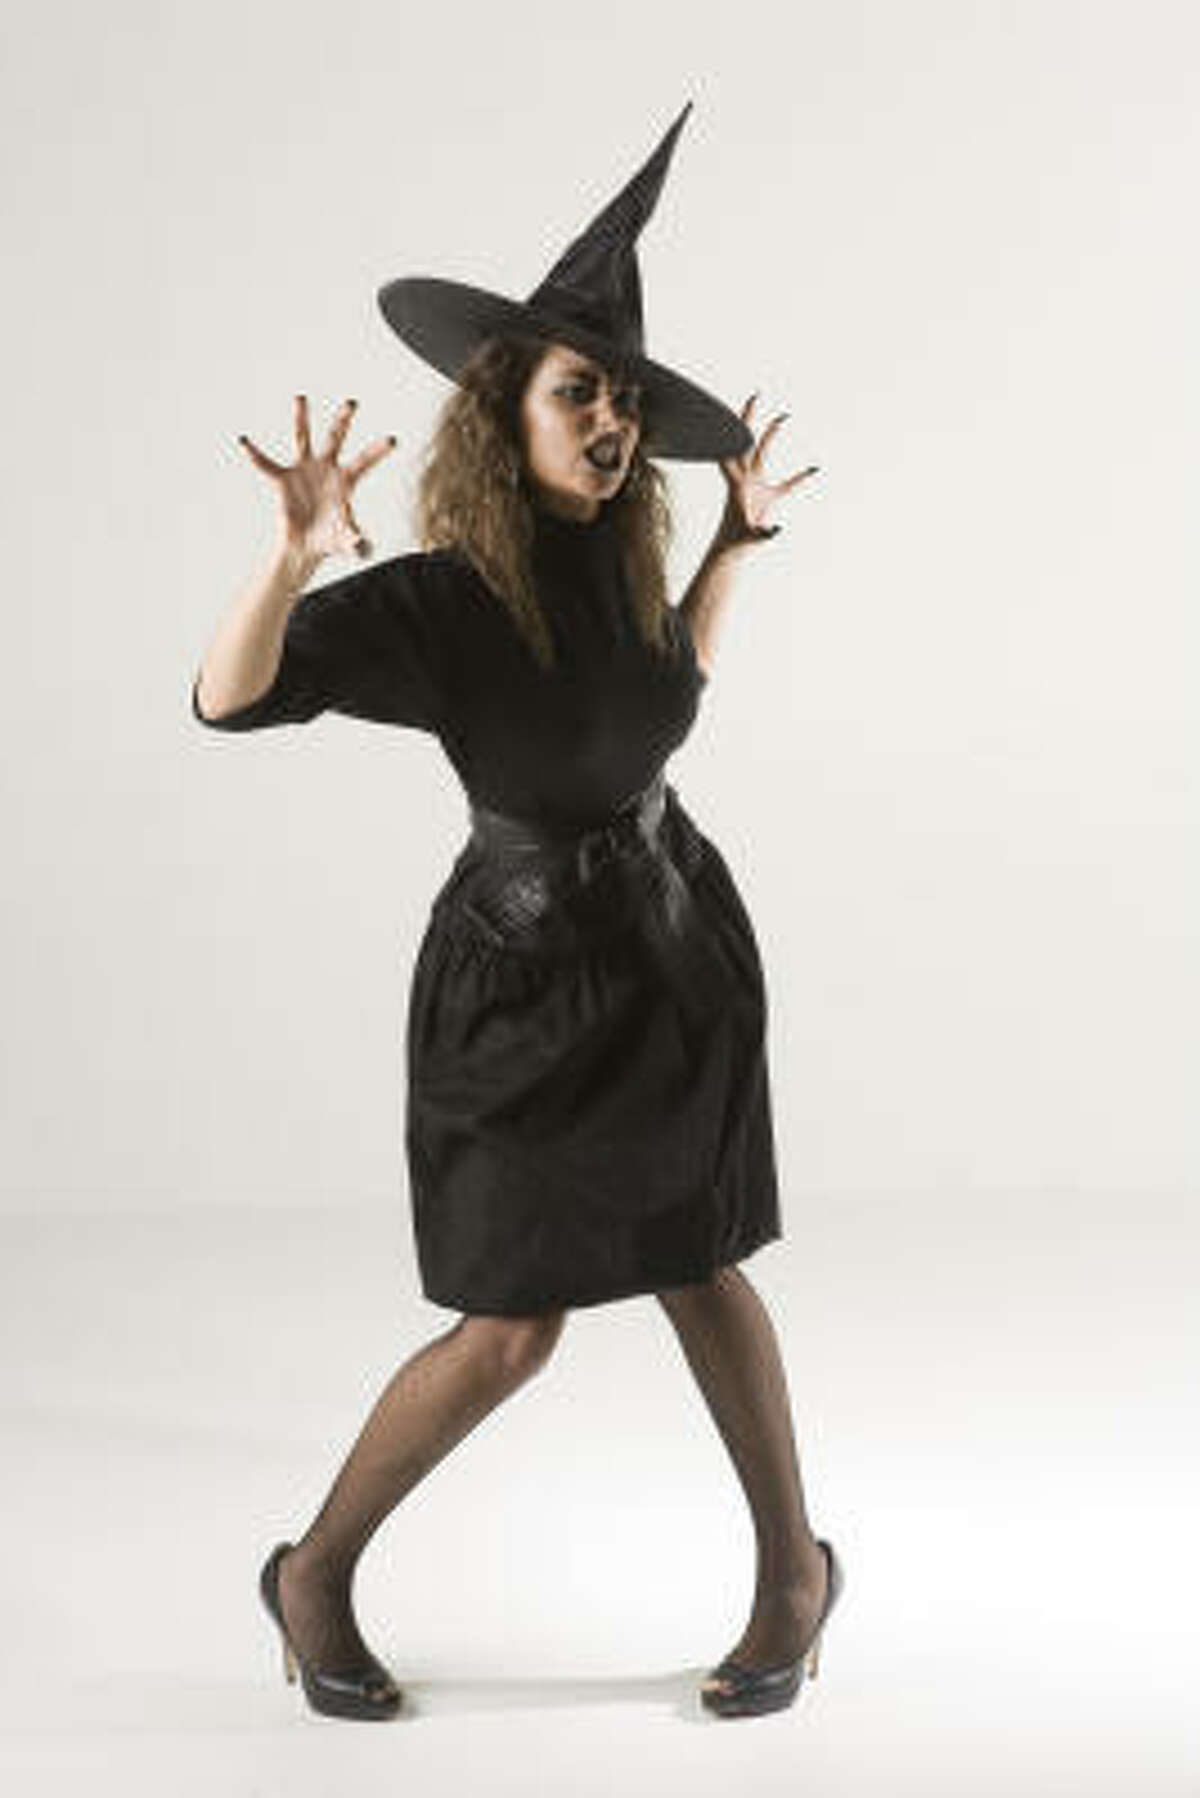 With a little make-up and a hat, the classic witch costume can be easily thrown together as a last minute, cheap Halloween costume.